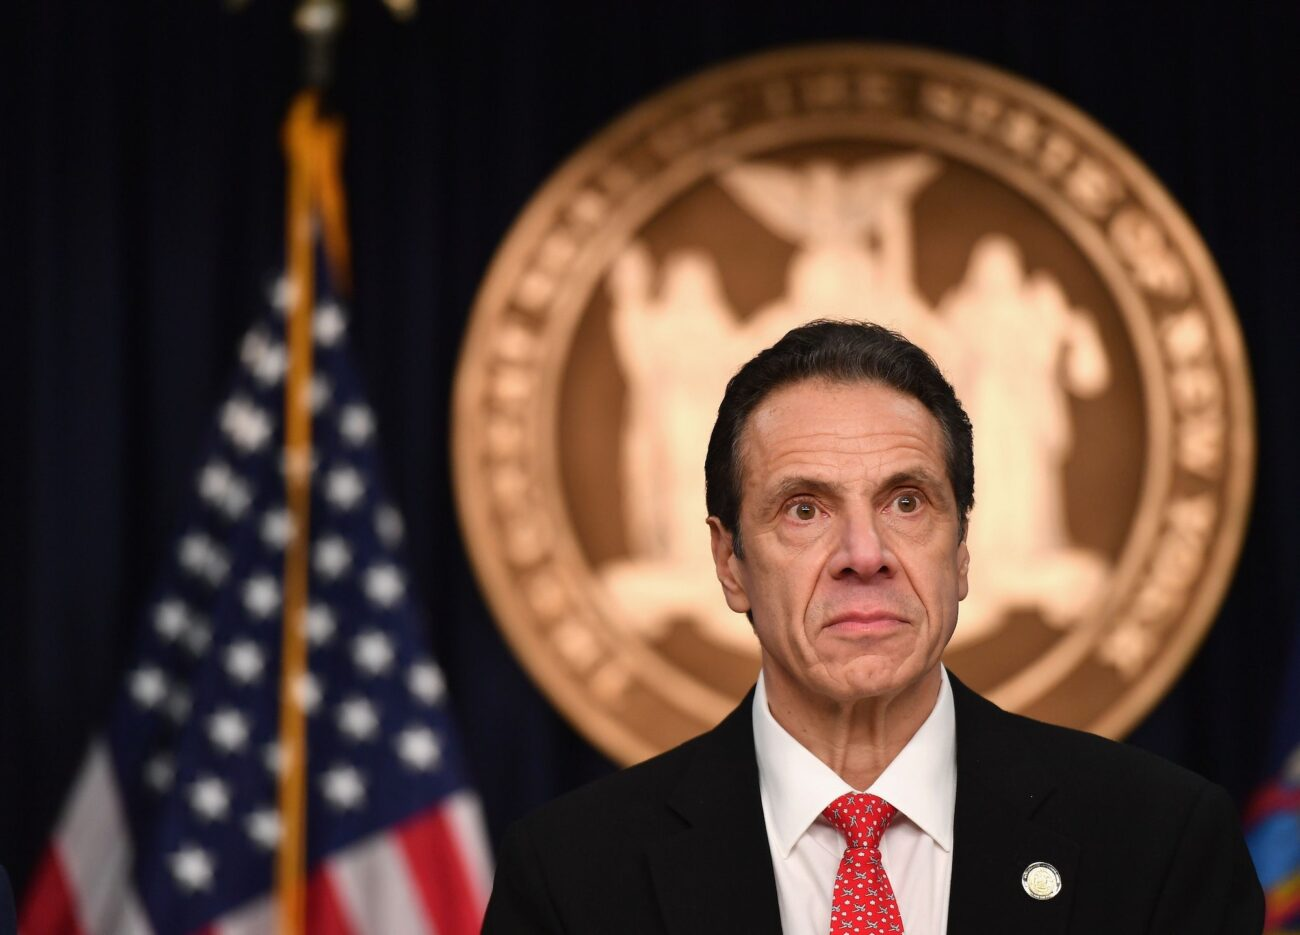 Andrew Cuomo is officially under investigation regarding coronavirus scandals, but why? Read all about the pressing details surrounding the case here.